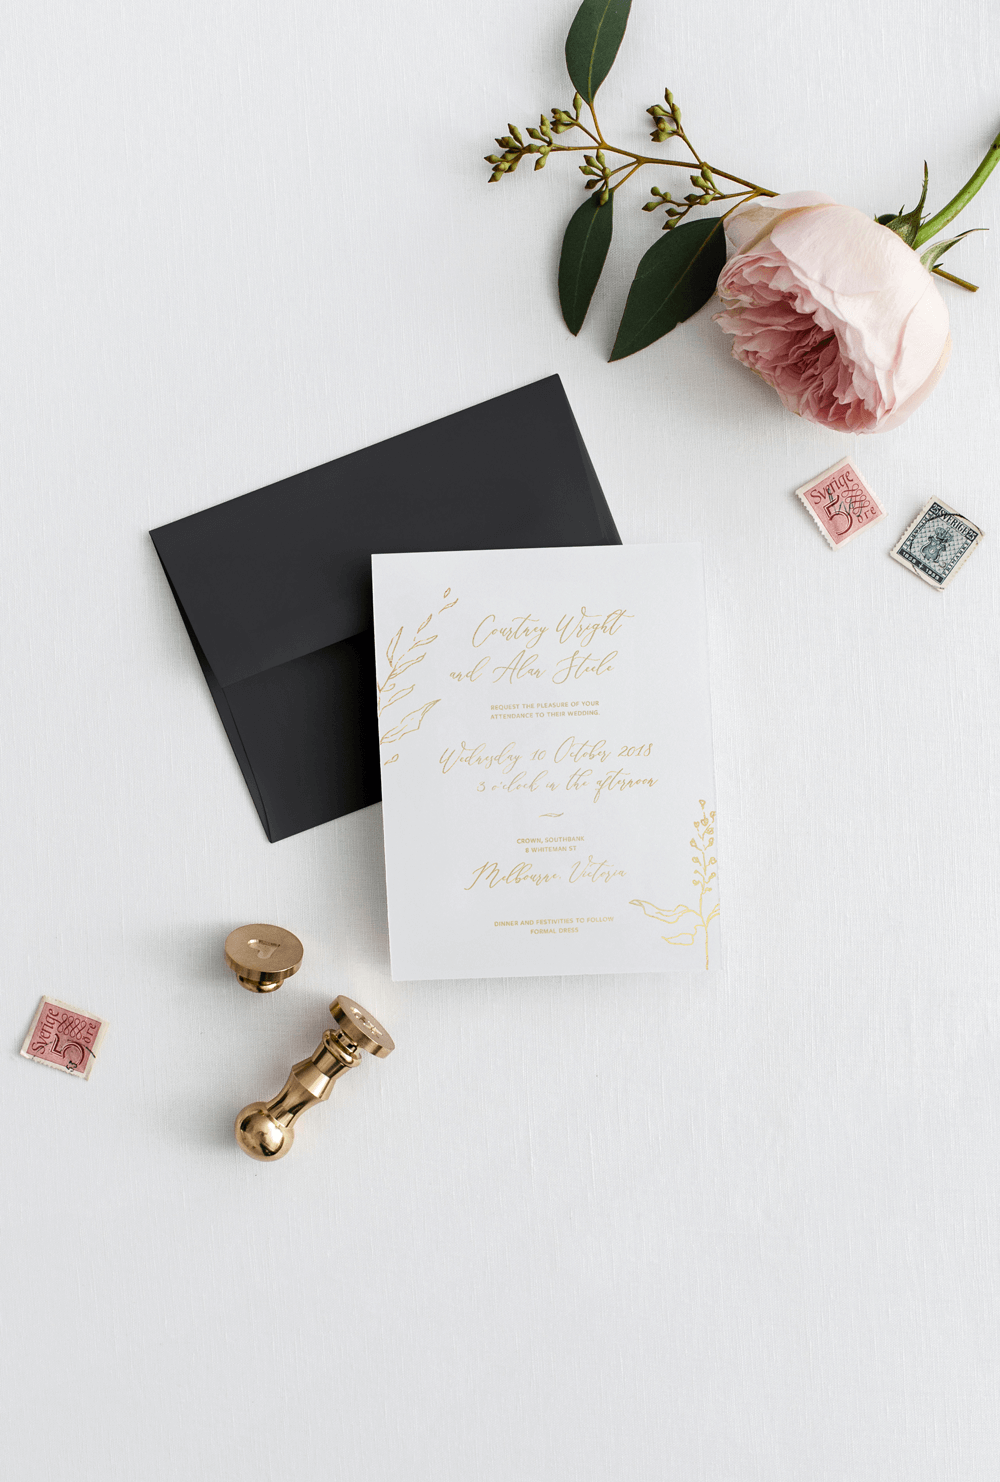 invitation with gold foiled printed letters, white card stock with black envelope and white card